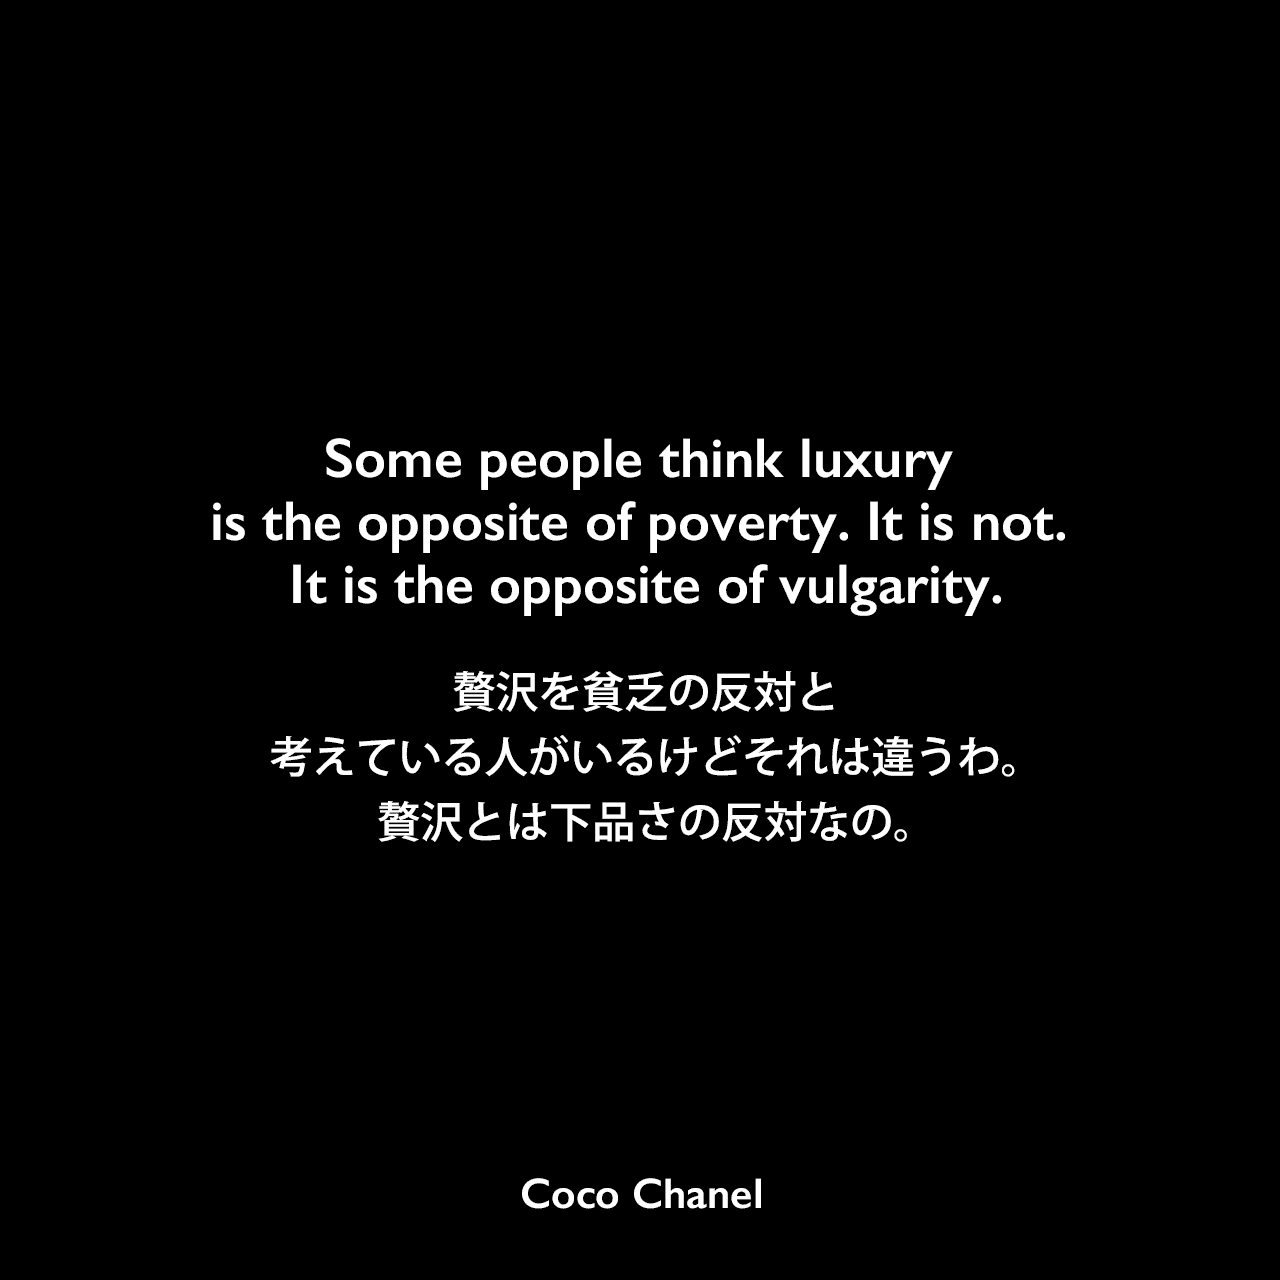 Some people think luxury is the opposite of poverty. It is not. It is the opposite of vulgarity.贅沢を貧乏の反対と考えている人がいるけど、それは違うわ。贅沢とは下品さの反対なの。Coco Chanel